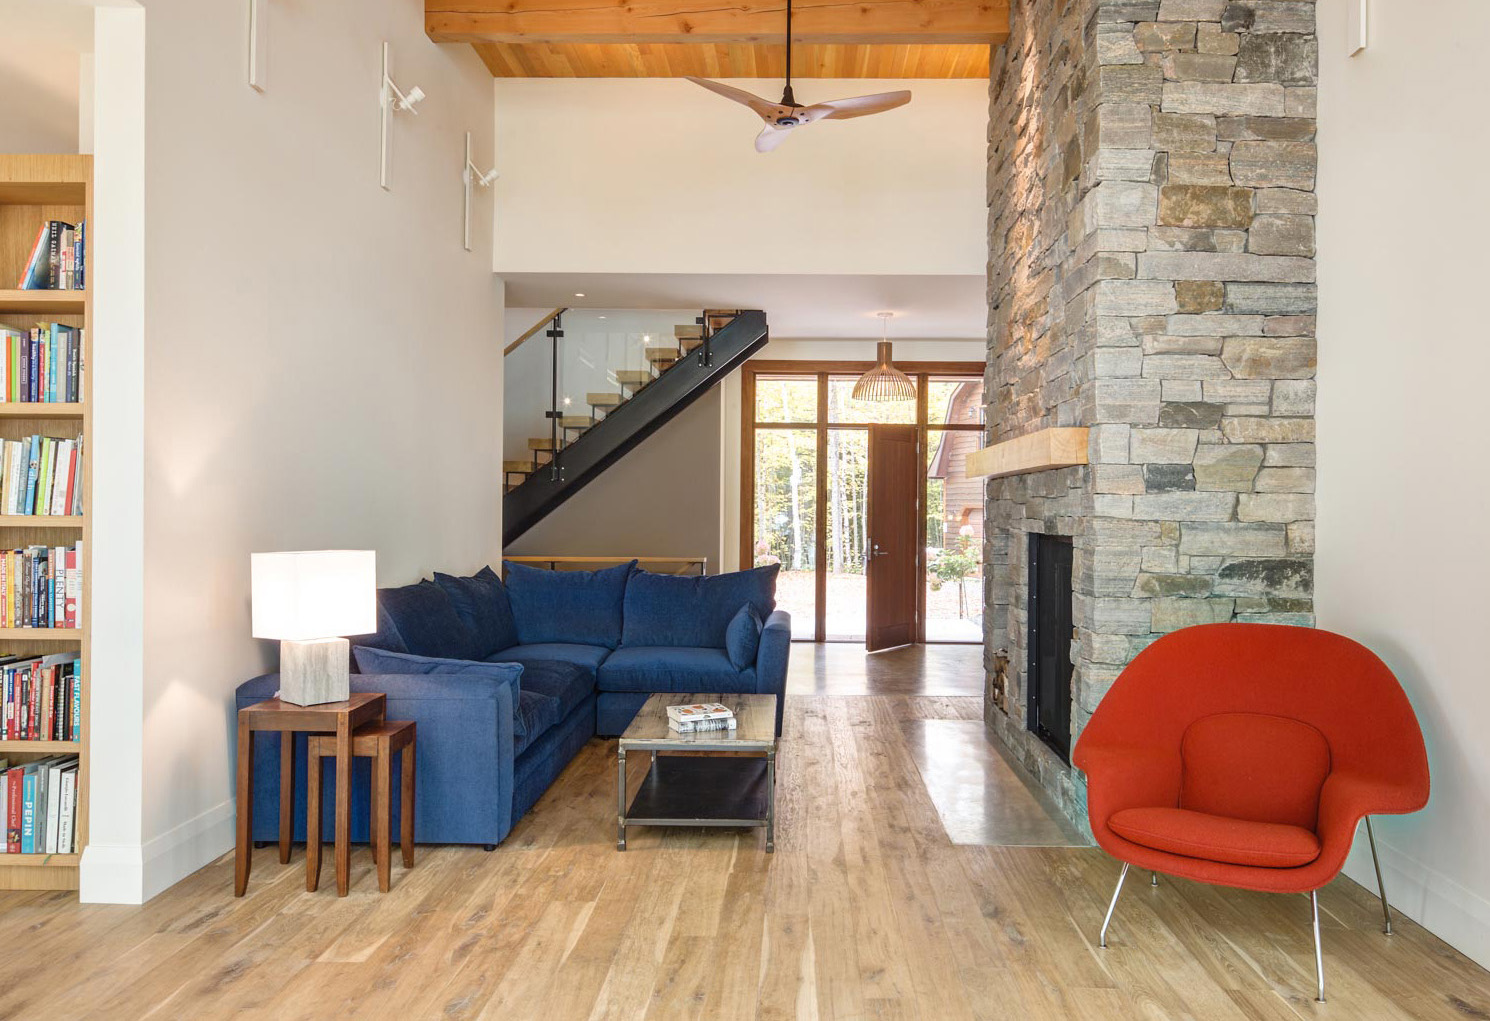 Seating area with stone fireplace with wood mantel sectional couch, and chair with a contemporary ceiling fan